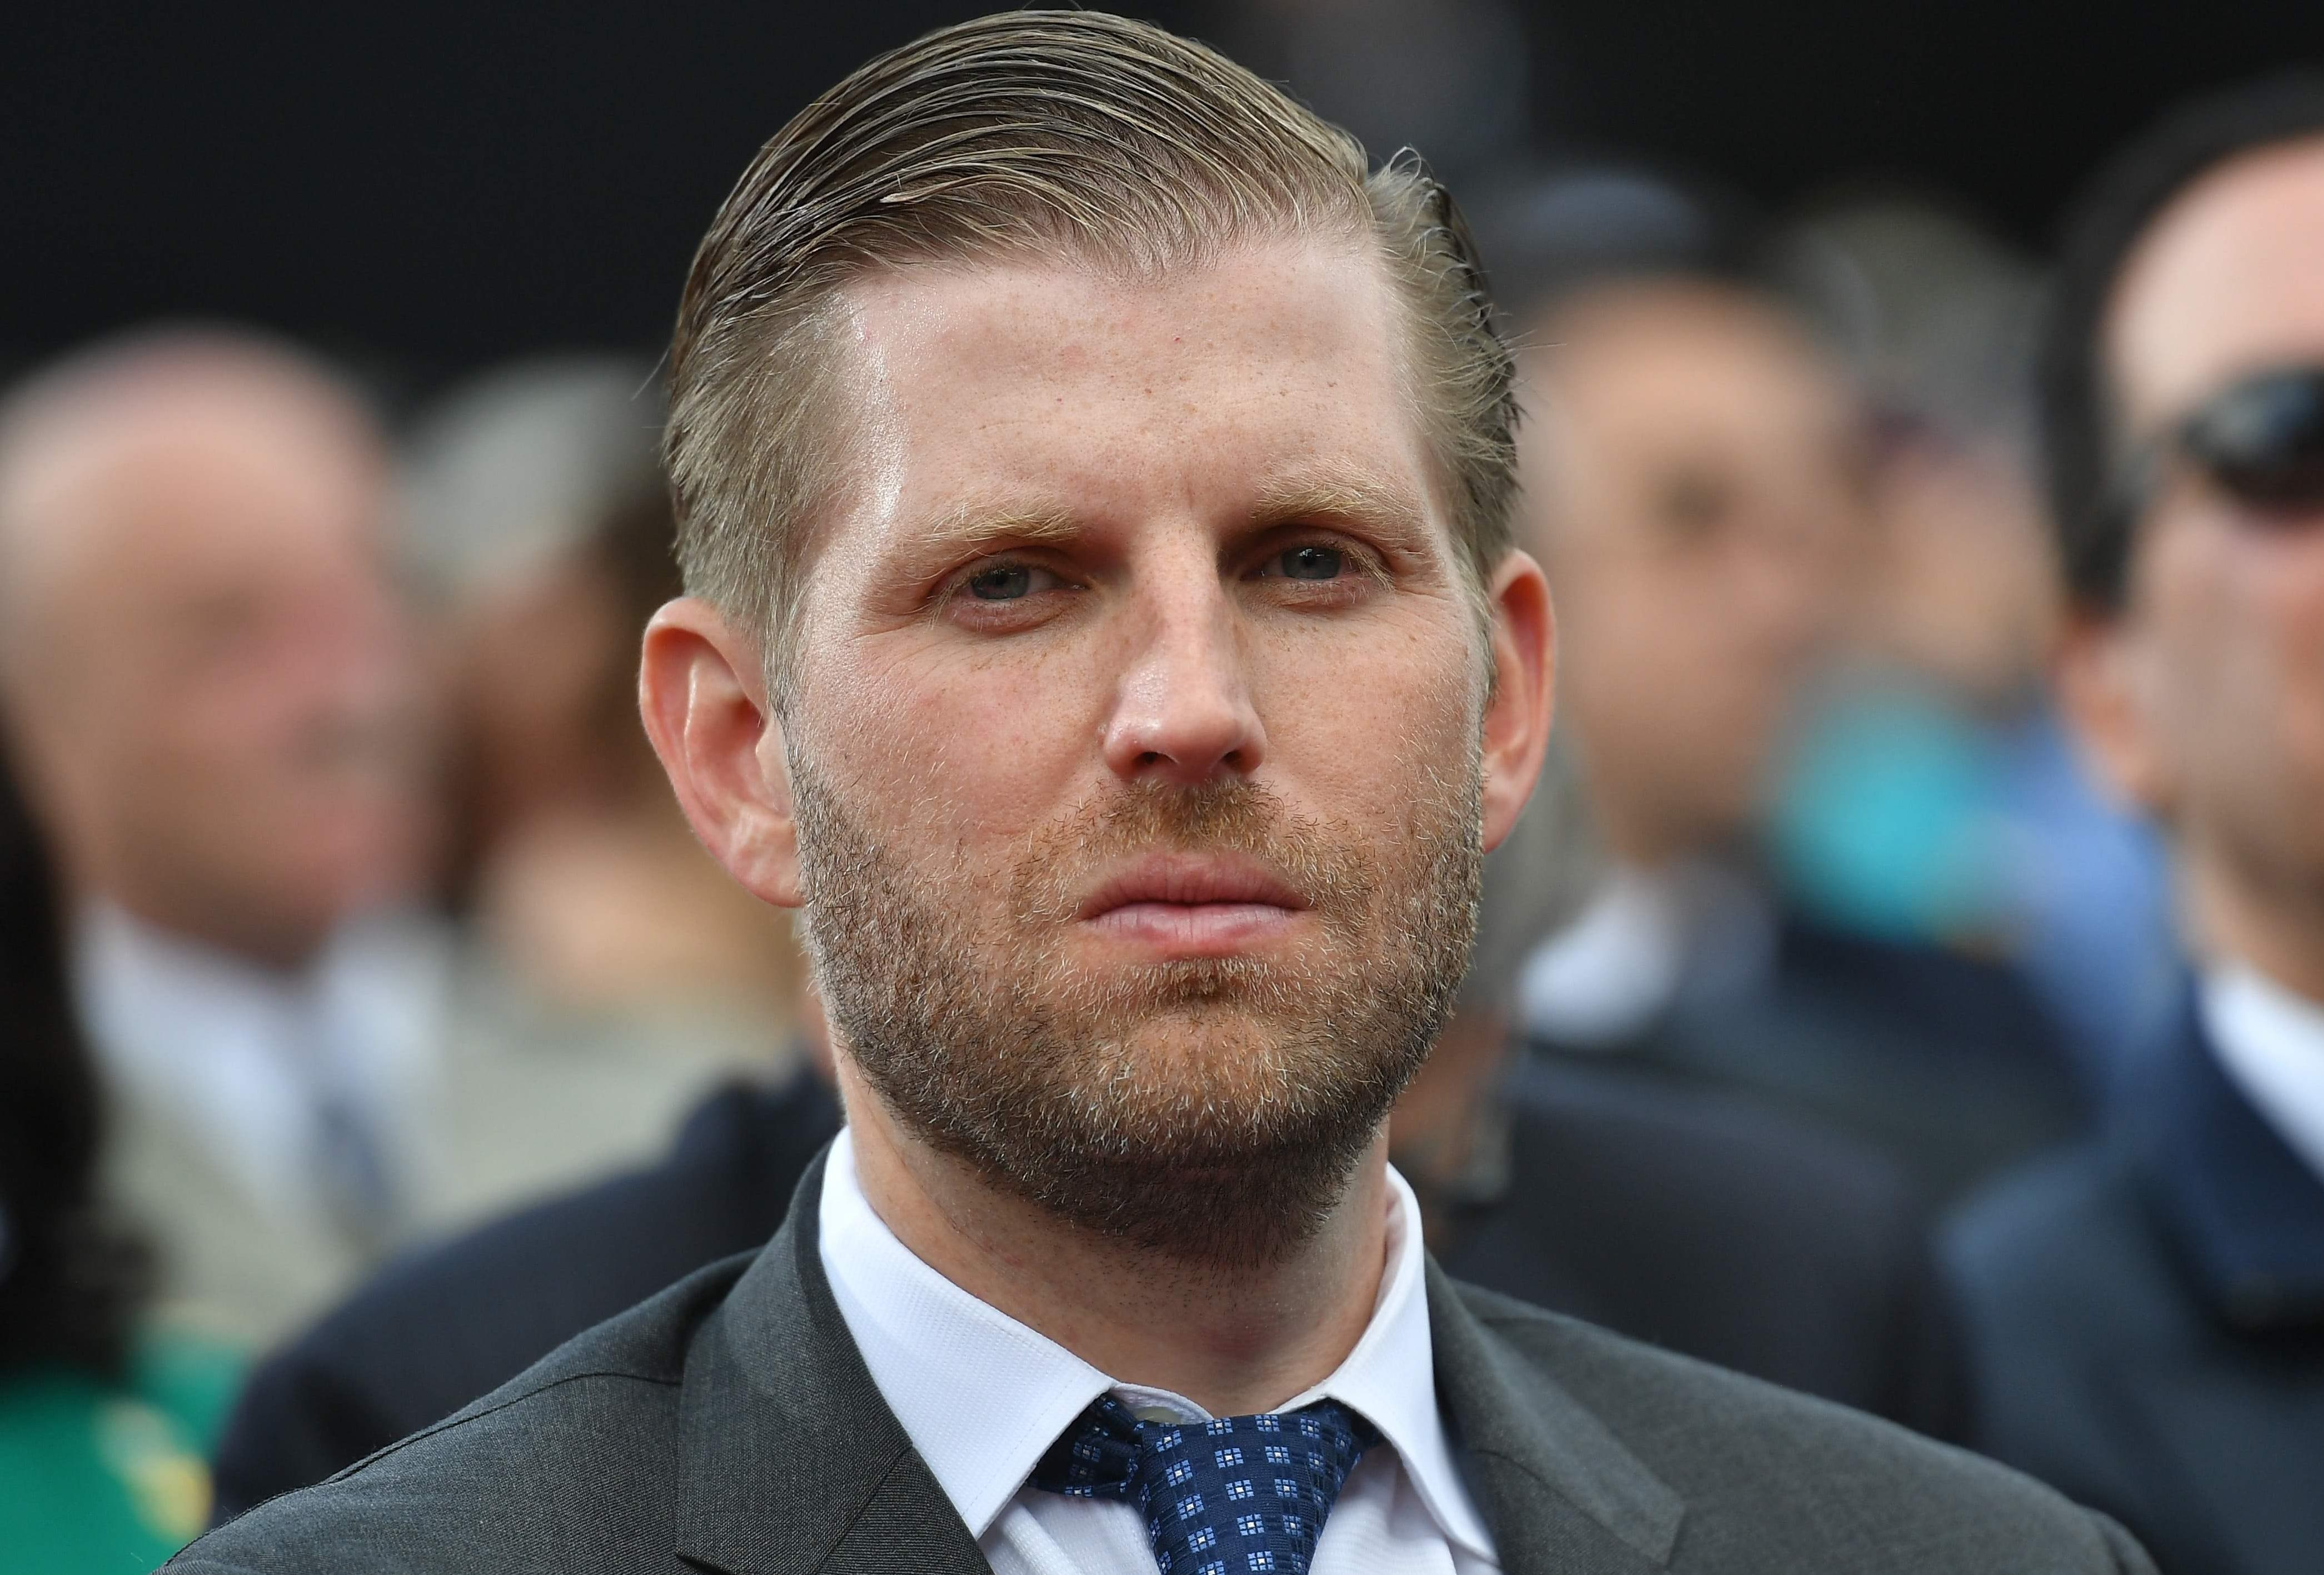 Eric Trump says an employee spit on him at an upscale Chicago cocktail bar